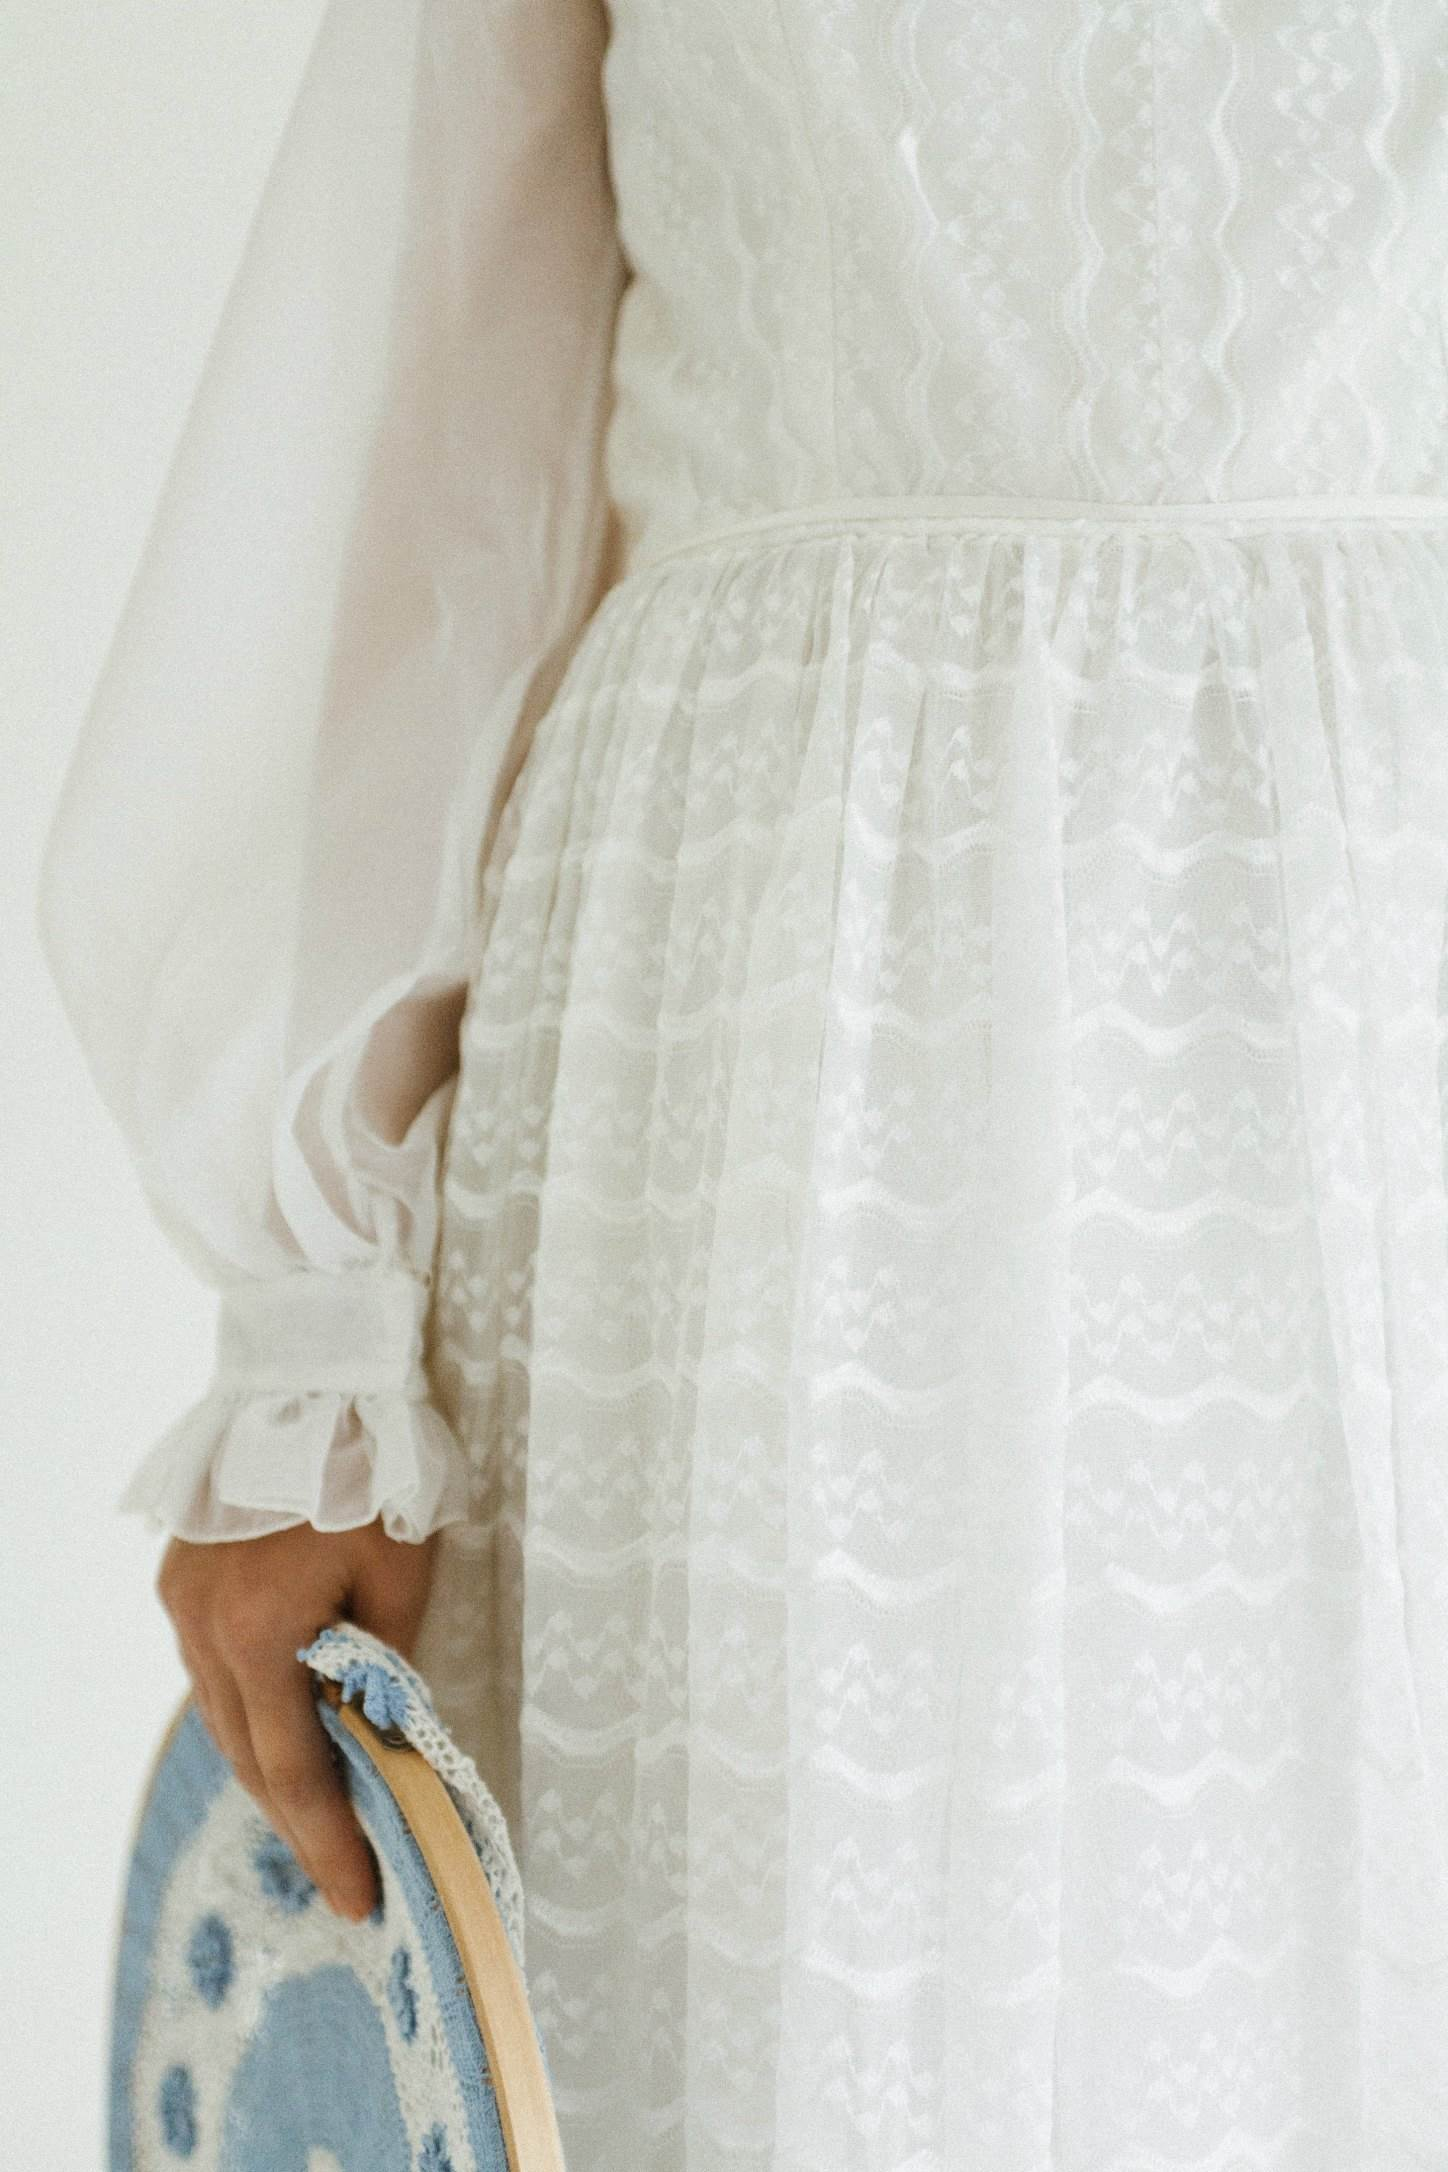 50 years of vintage wedding dresses photos by Claire Macintyre 1970s